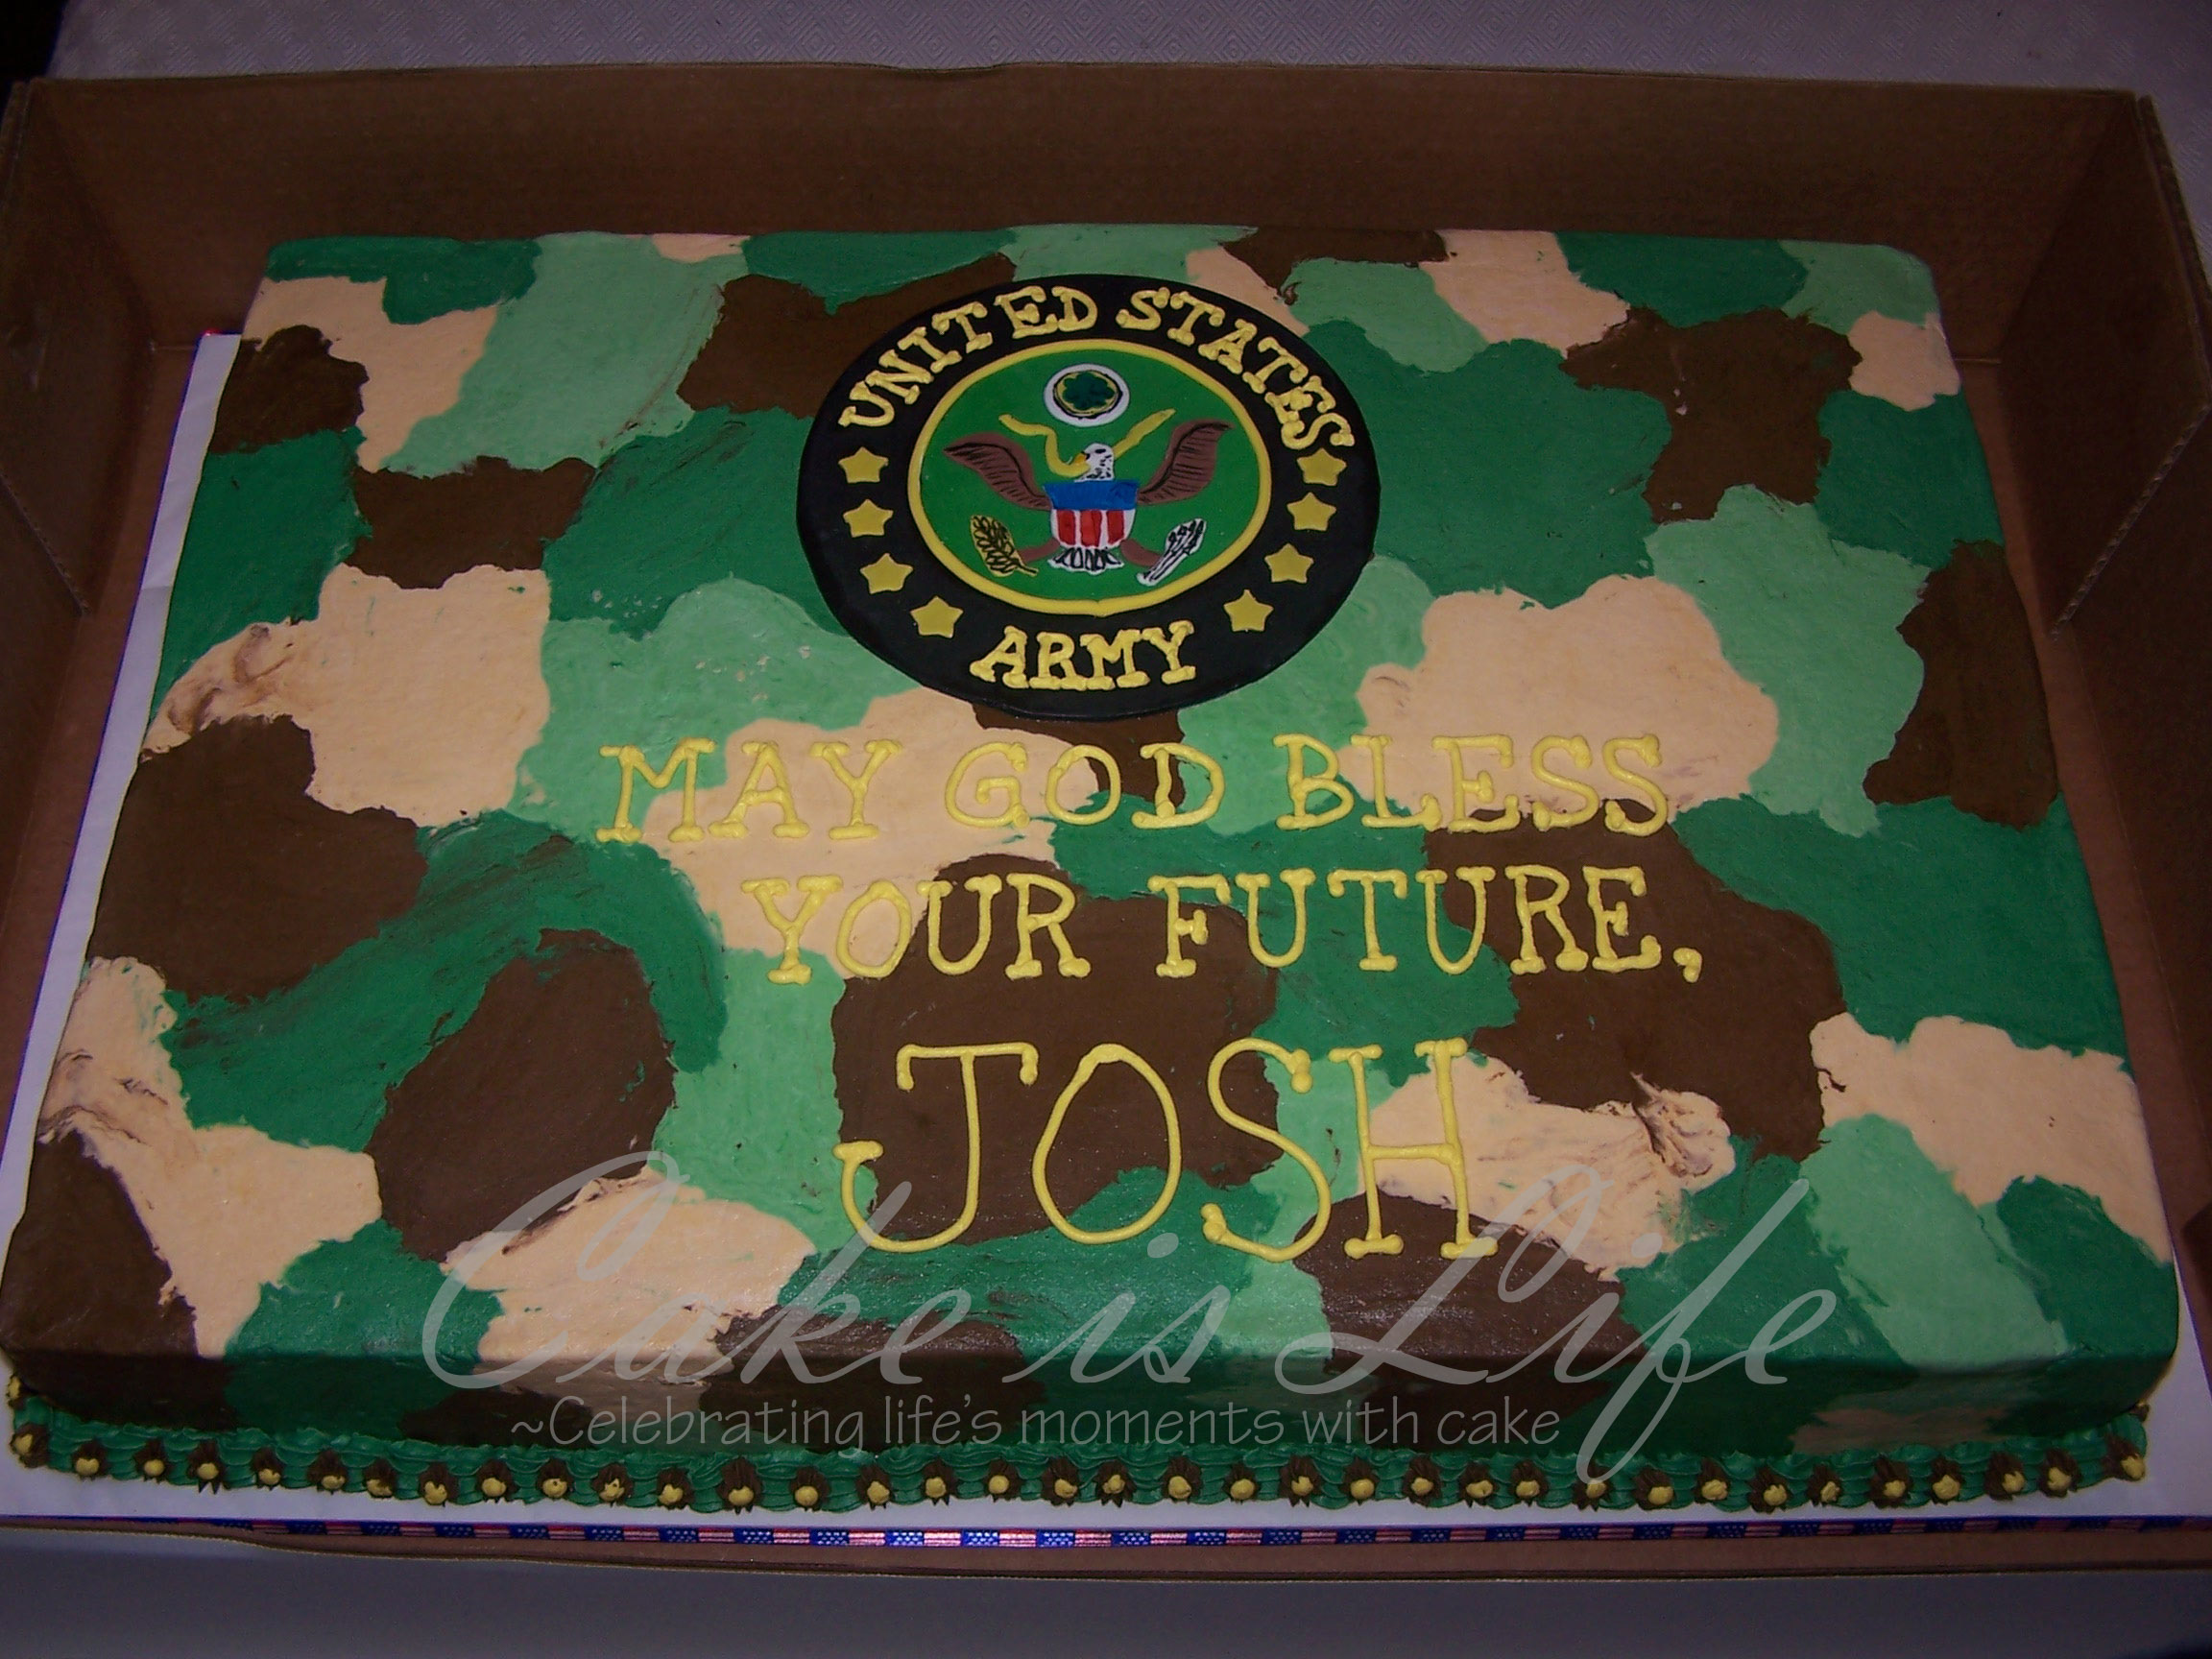 Best Wishes in the Army, Josh!  Cake Is Life